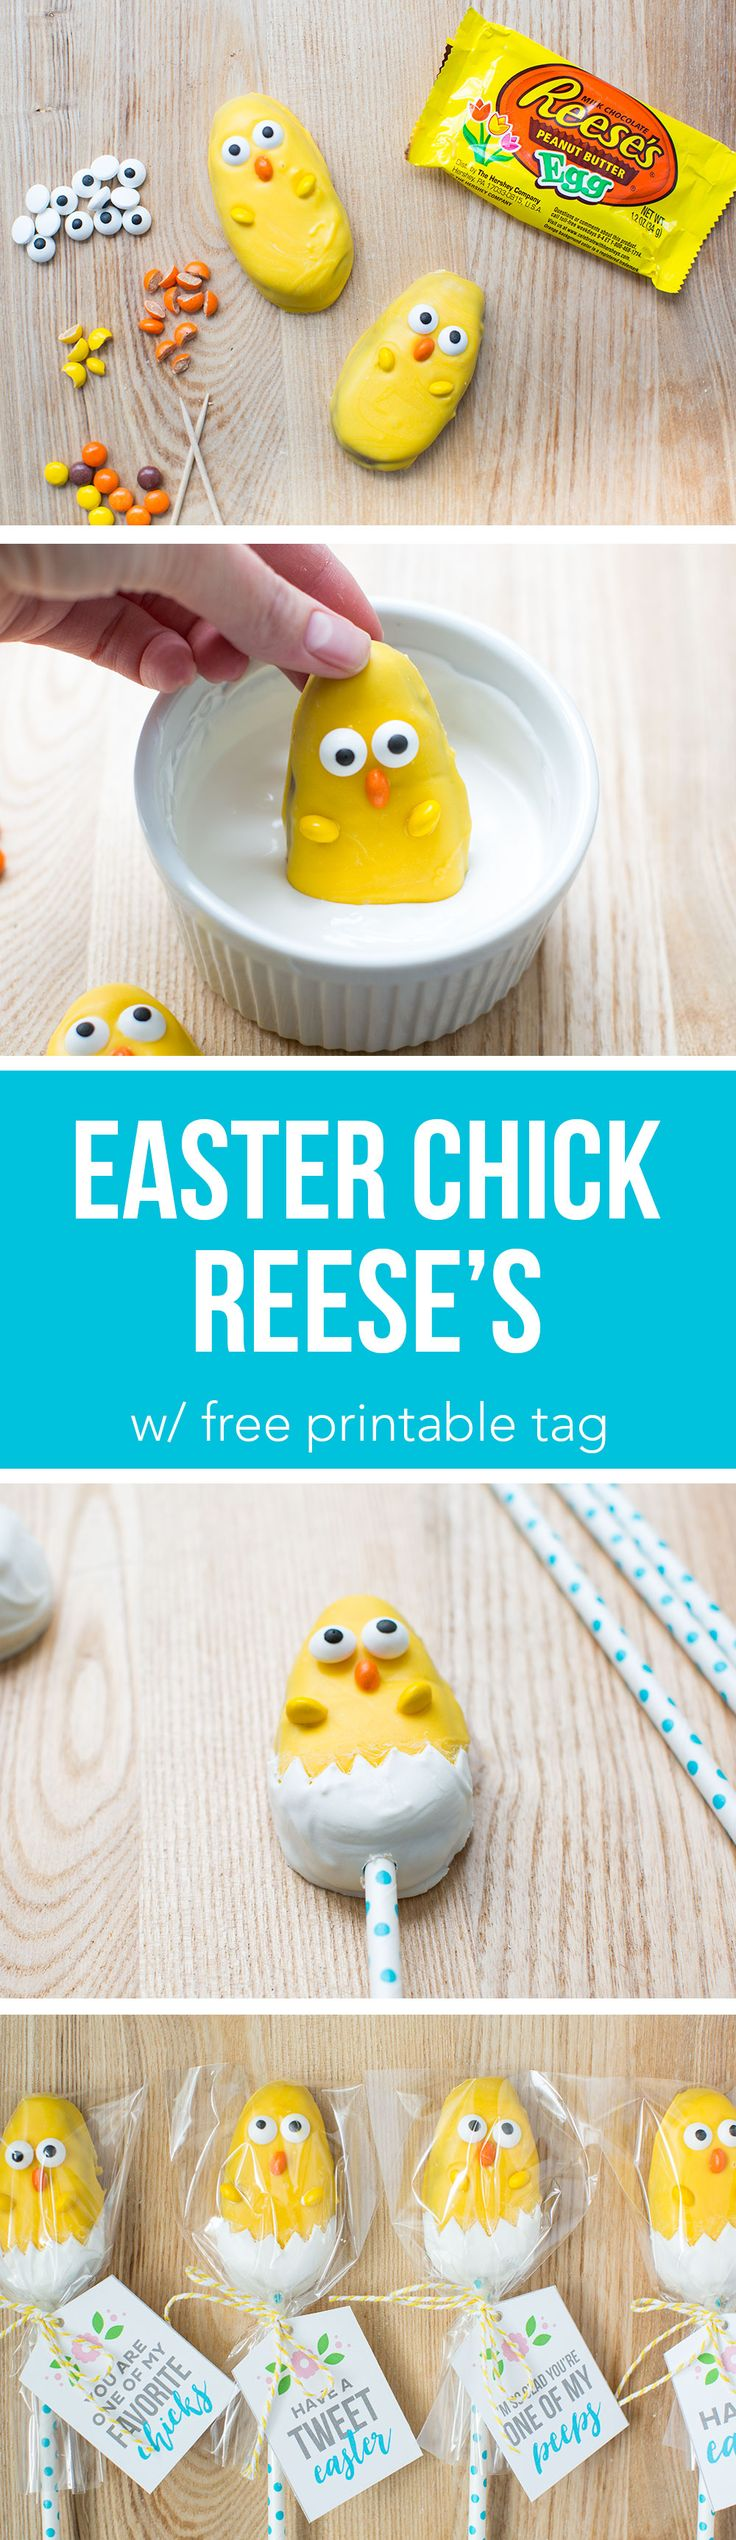 Easter Chick Treats – the most adorable candy chicks made from a Reese's egg! These are soeasy to make and the kids will lovehelping makethese cuties